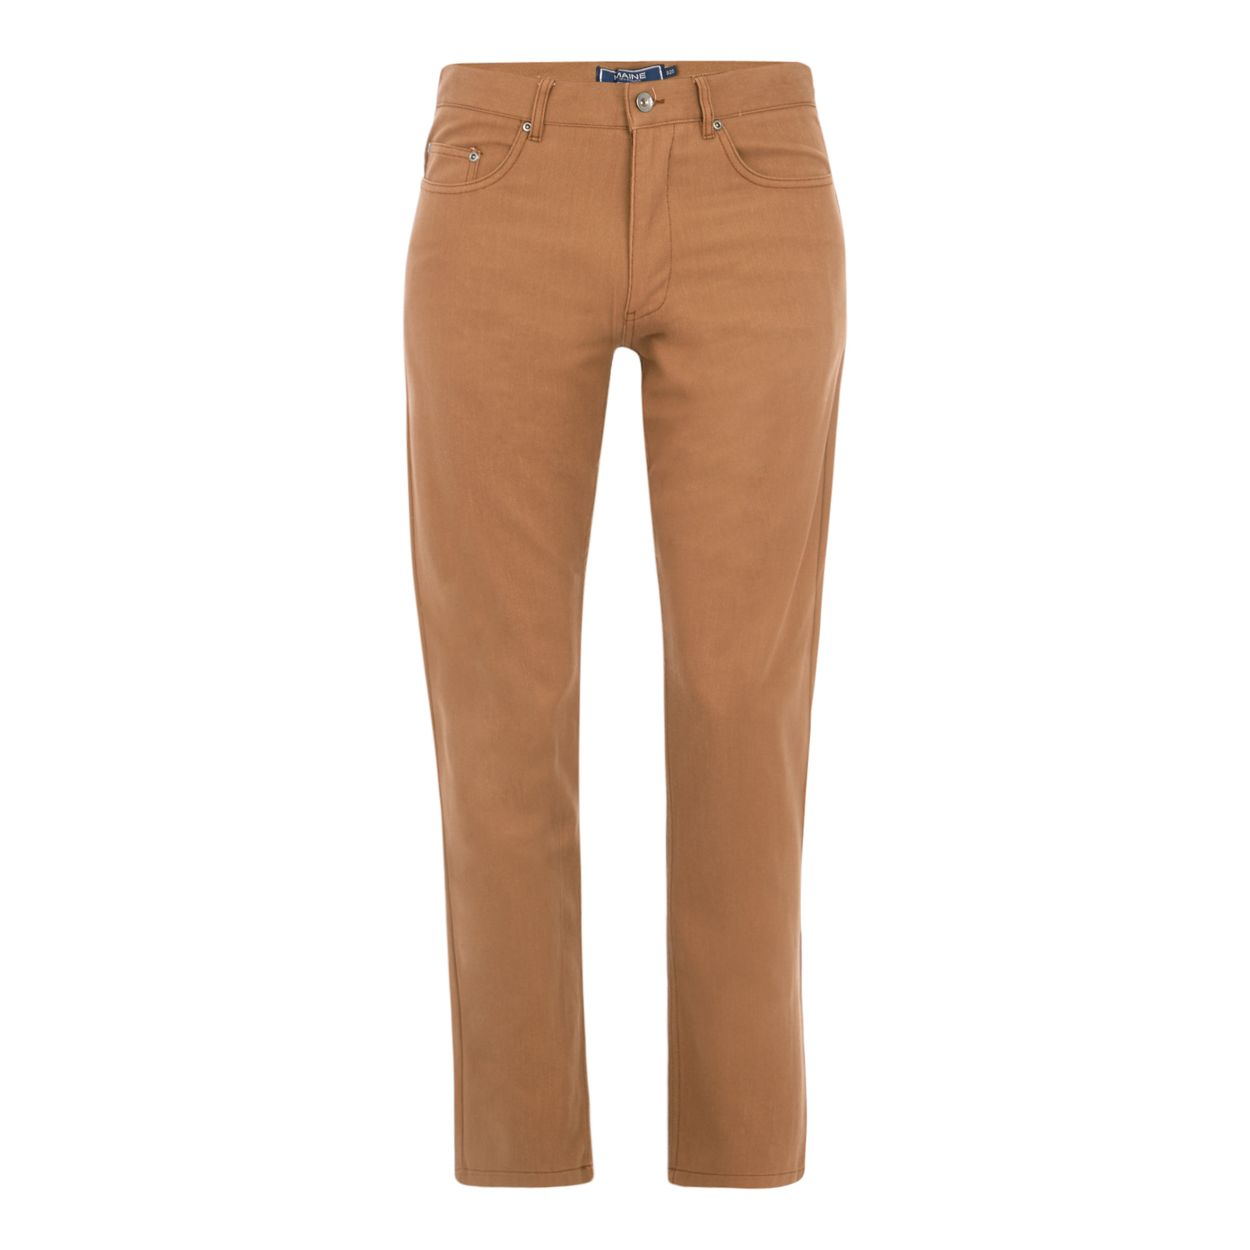 Maine New England Tan broken Bedford trousers